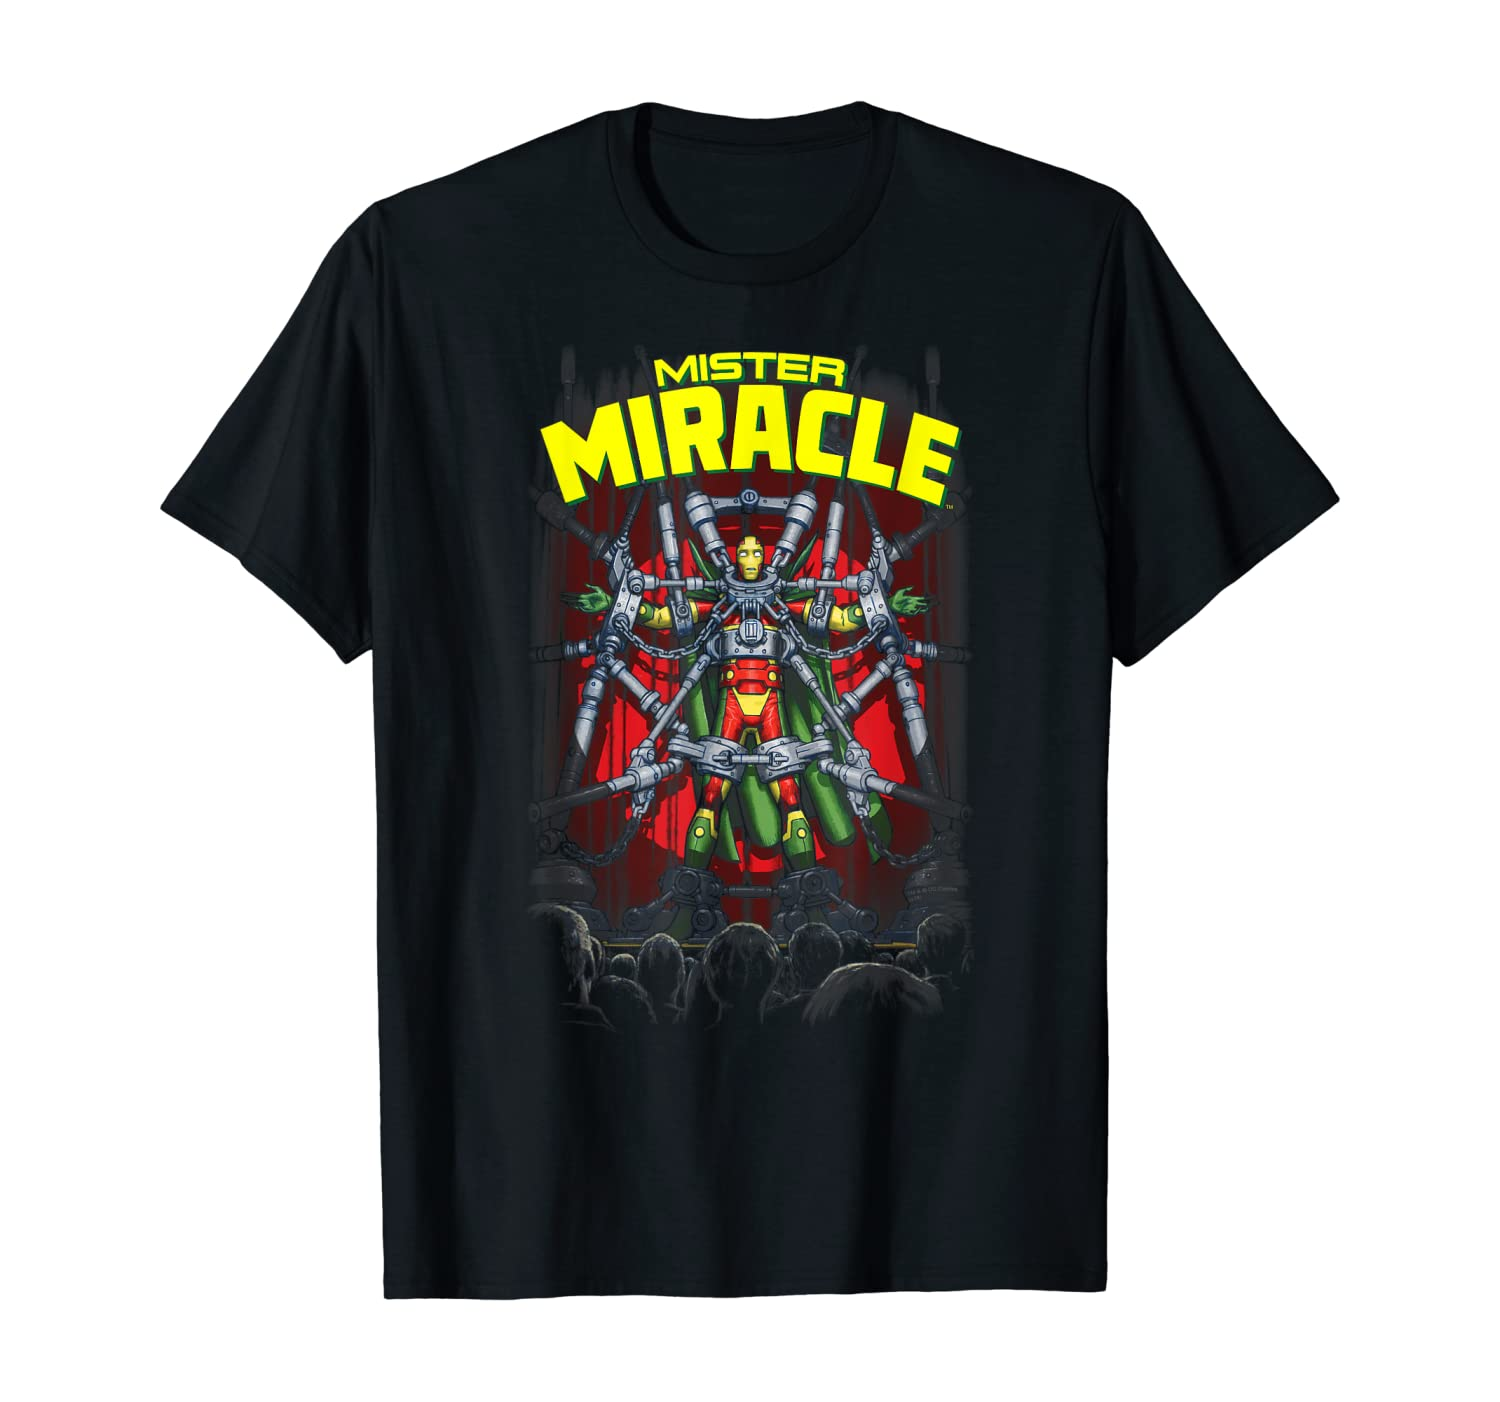 Top 8 Mister Miracle Shirt